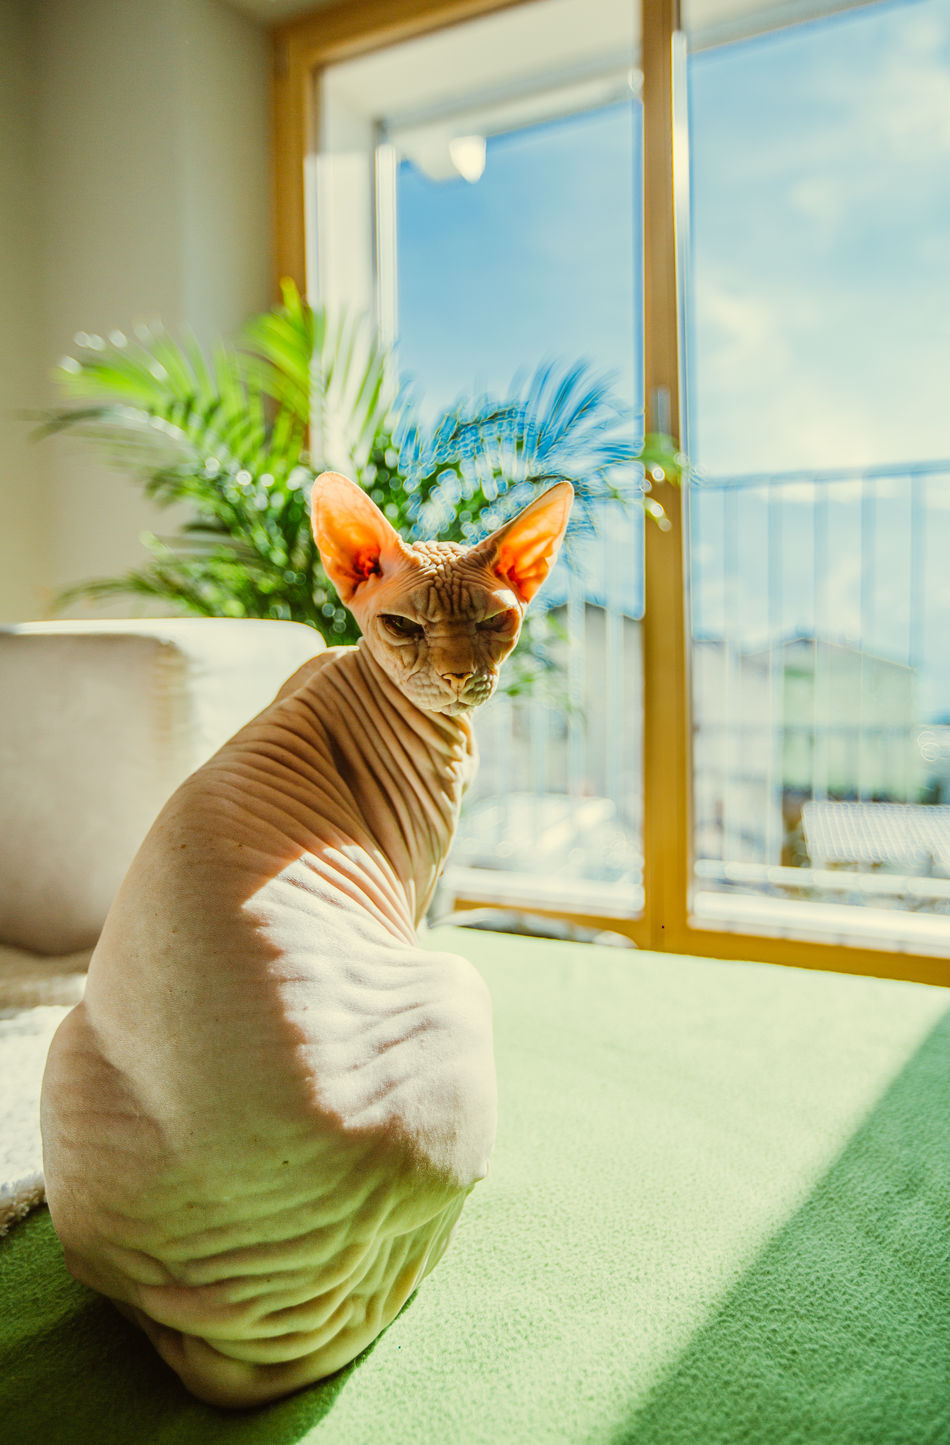 Window Domestic Cat One Animal Window Sill Pets Domestic Animals Cateyes Cat Lovers Cat Watching Cat Eyes Cat Photography Catlovers Catsagram Cats 🐱 Cat♡ Cat Cats Of EyeEm Day Portrait Close-up No People Animal Themes Looking At Camera Animals In The Wild Animal